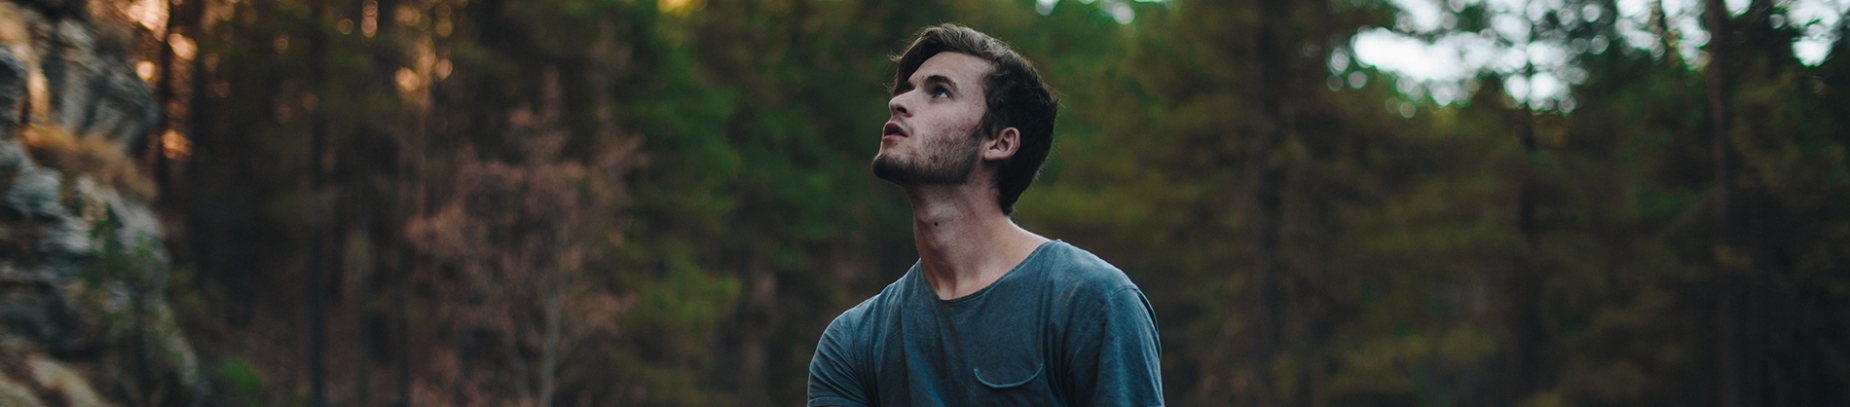 A guy looking up to the sky in the middle of a forest